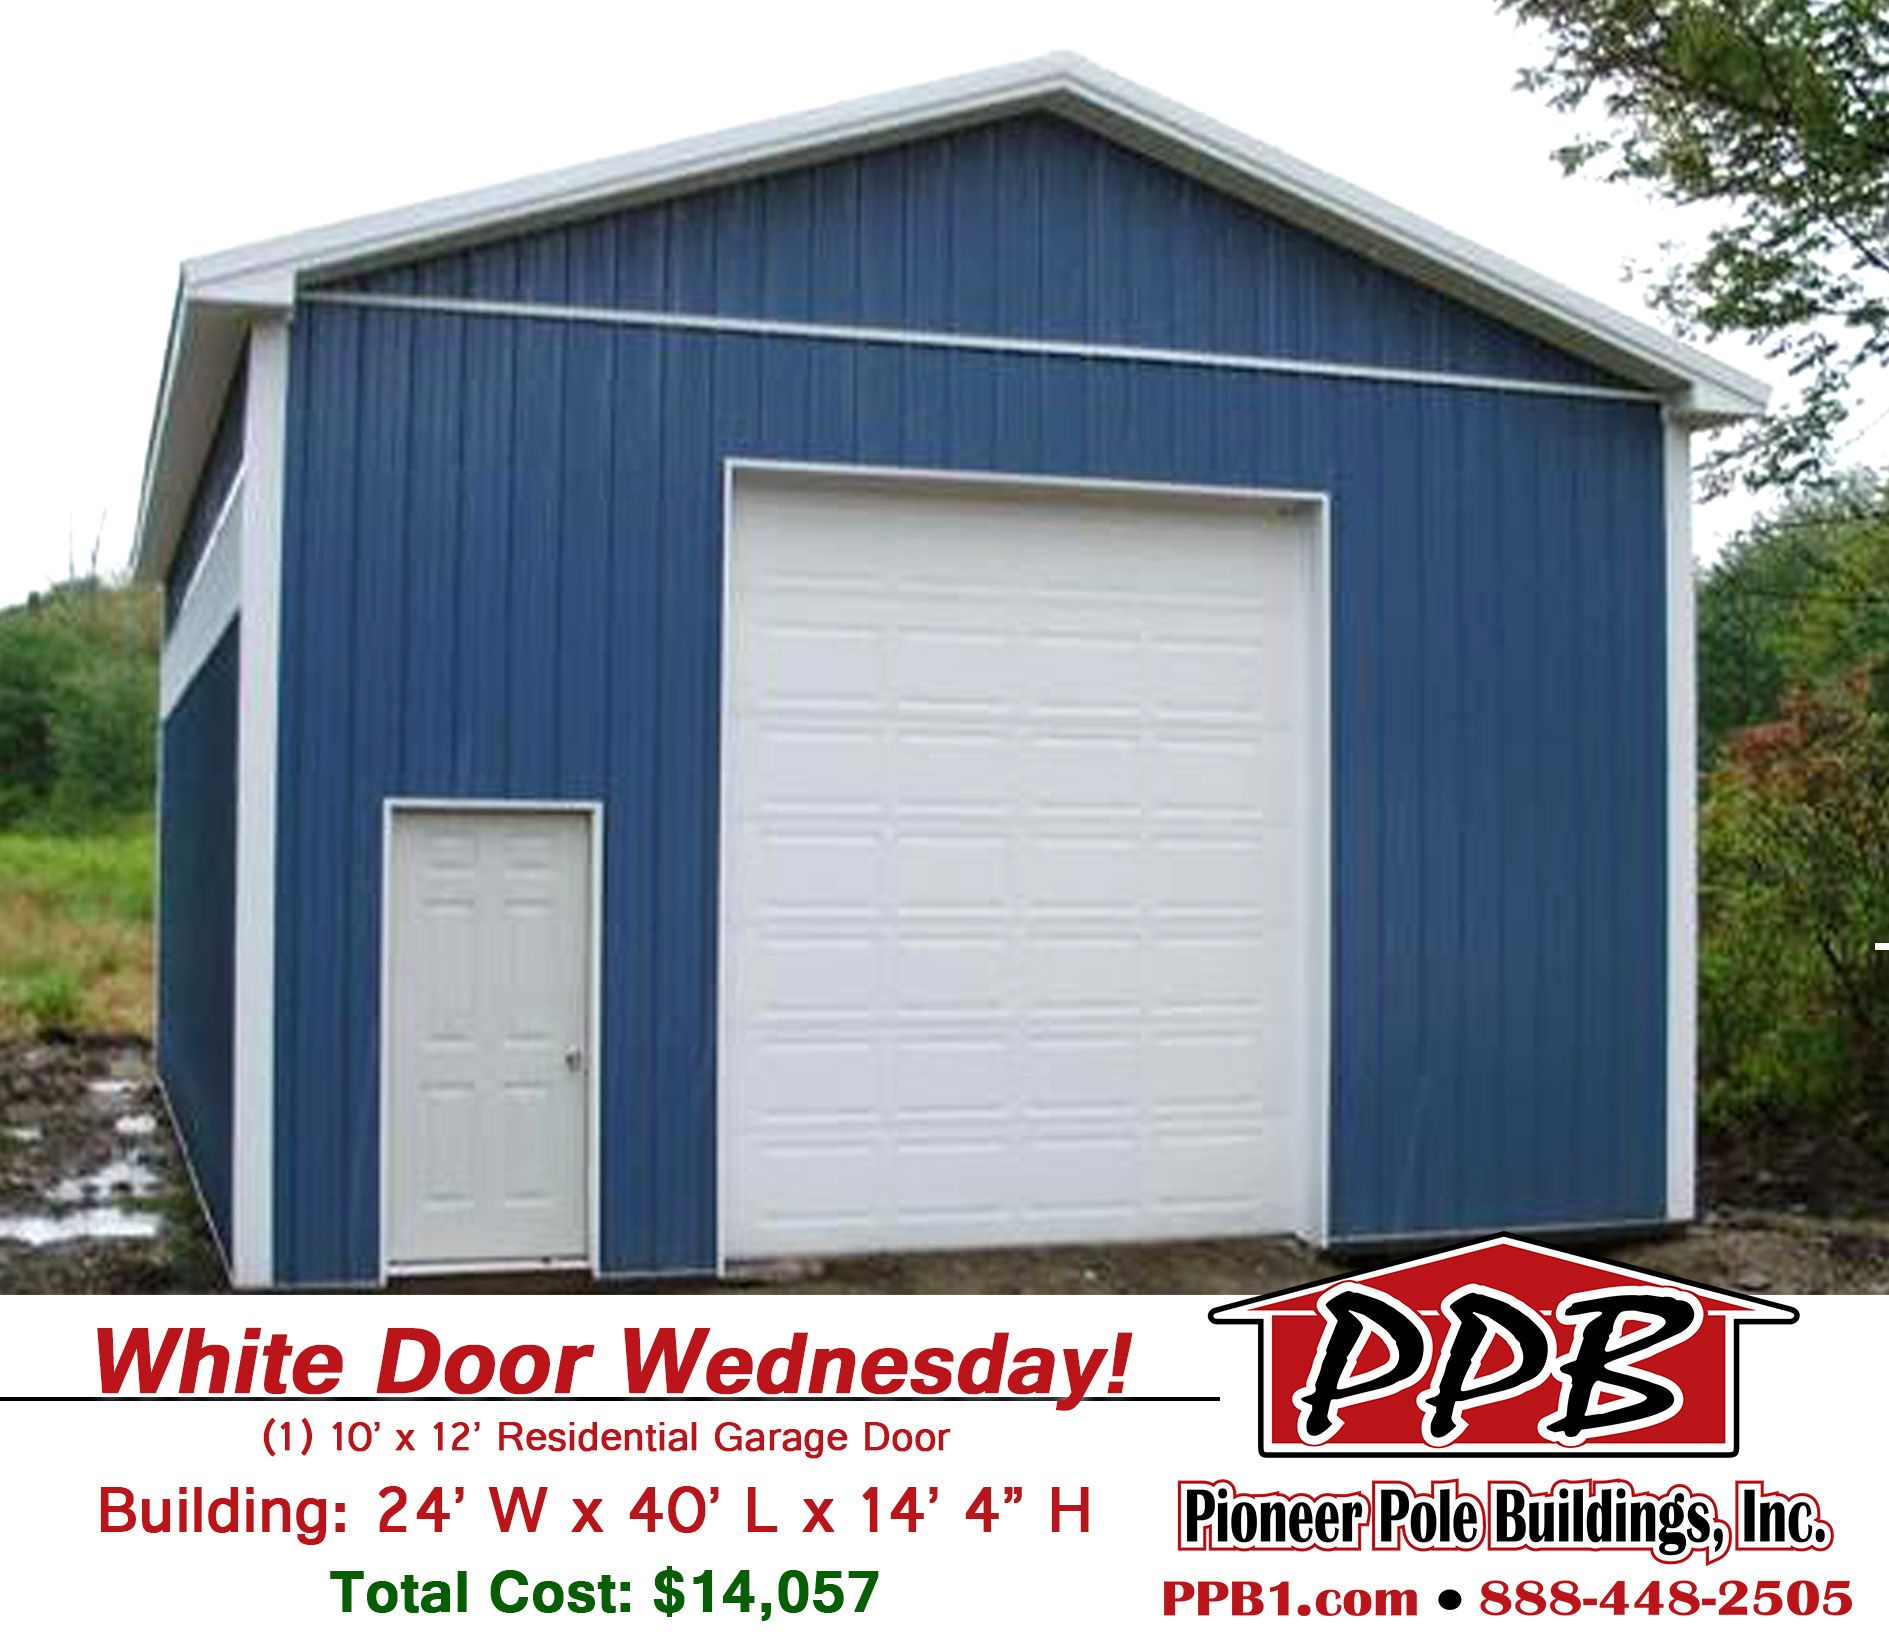 White Door Wednesday Dimensions 24 W X 40 L X 14 4 H Id 232 24 Standard Trusses 4 On Center Garage Doors Residential Garage Doors Garage Design